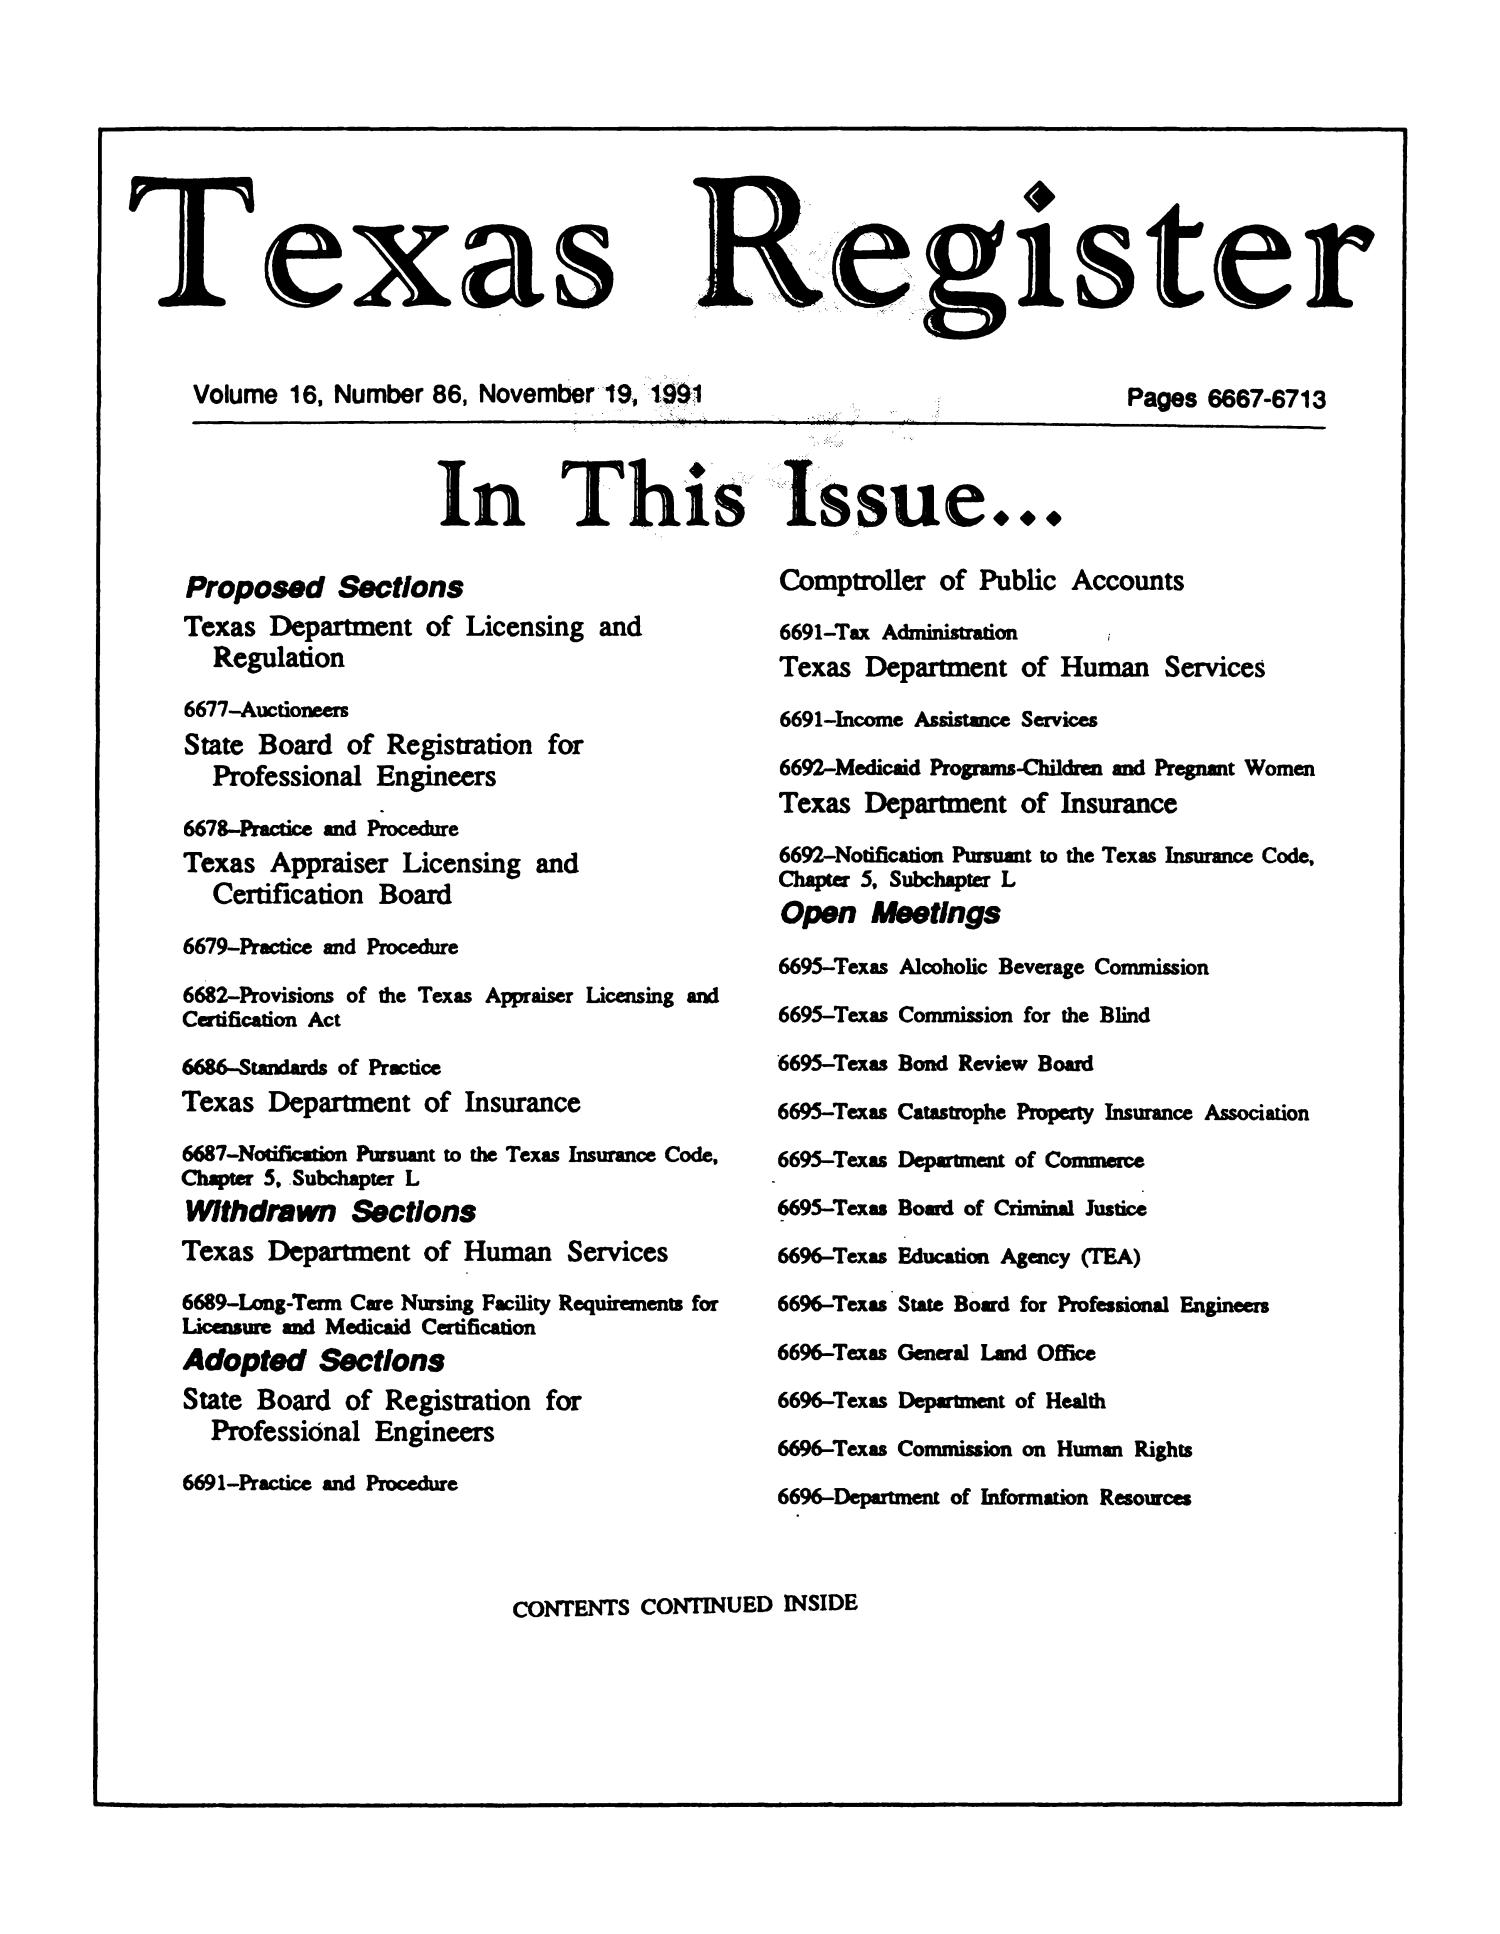 Texas register volume 16 number 86 pages 6667 6713 november 19 texas register volume 16 number 86 pages 6667 6713 november 19 1991 the portal to texas history xflitez Image collections